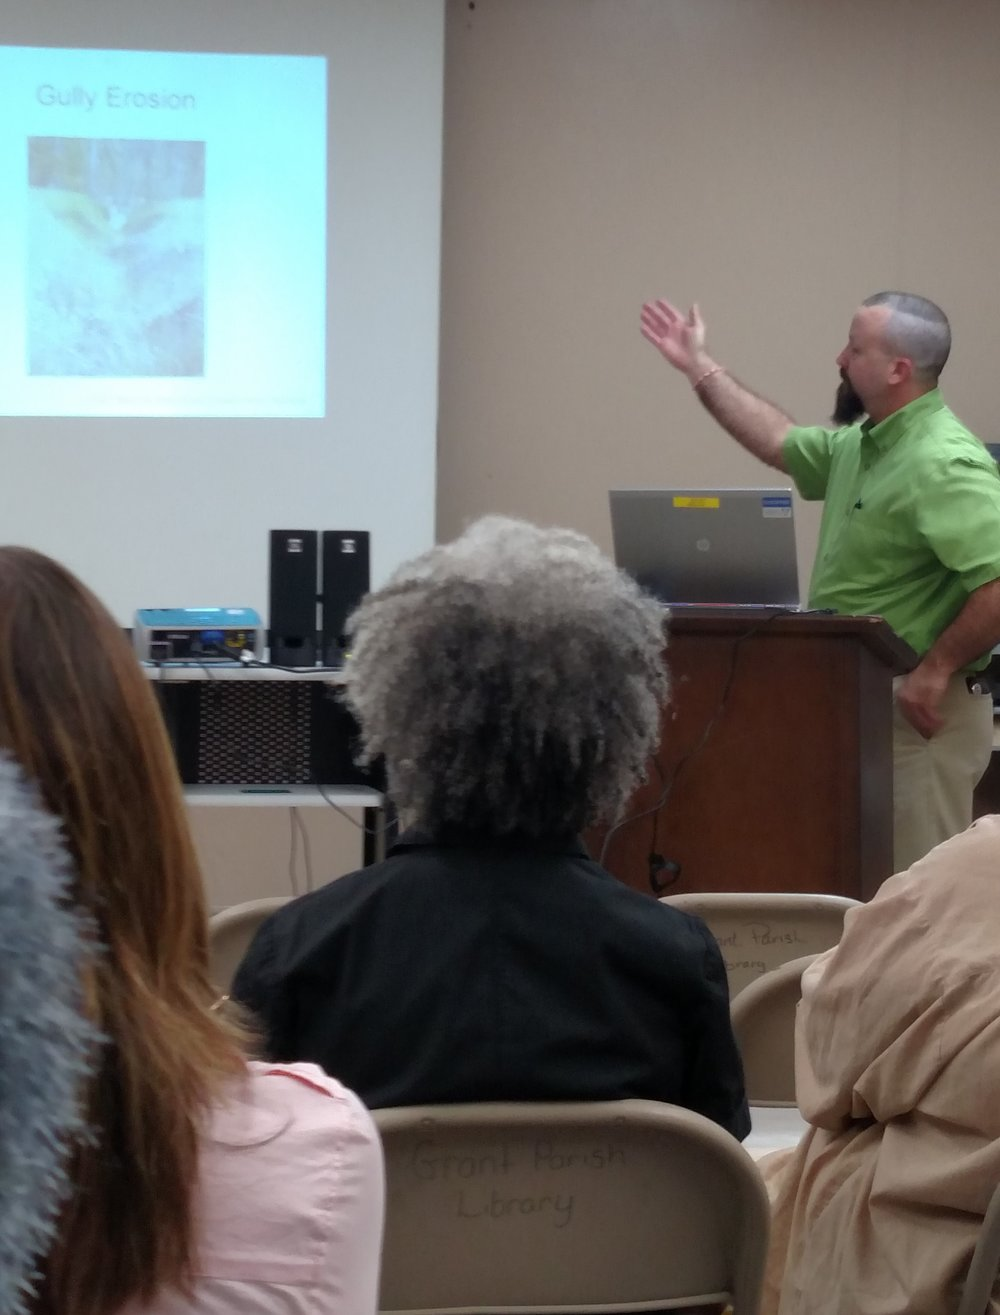 Kirk Garber, USDA Natural Resources Conservation Service, presents at a recent USDA Strikeforce Outreach event.